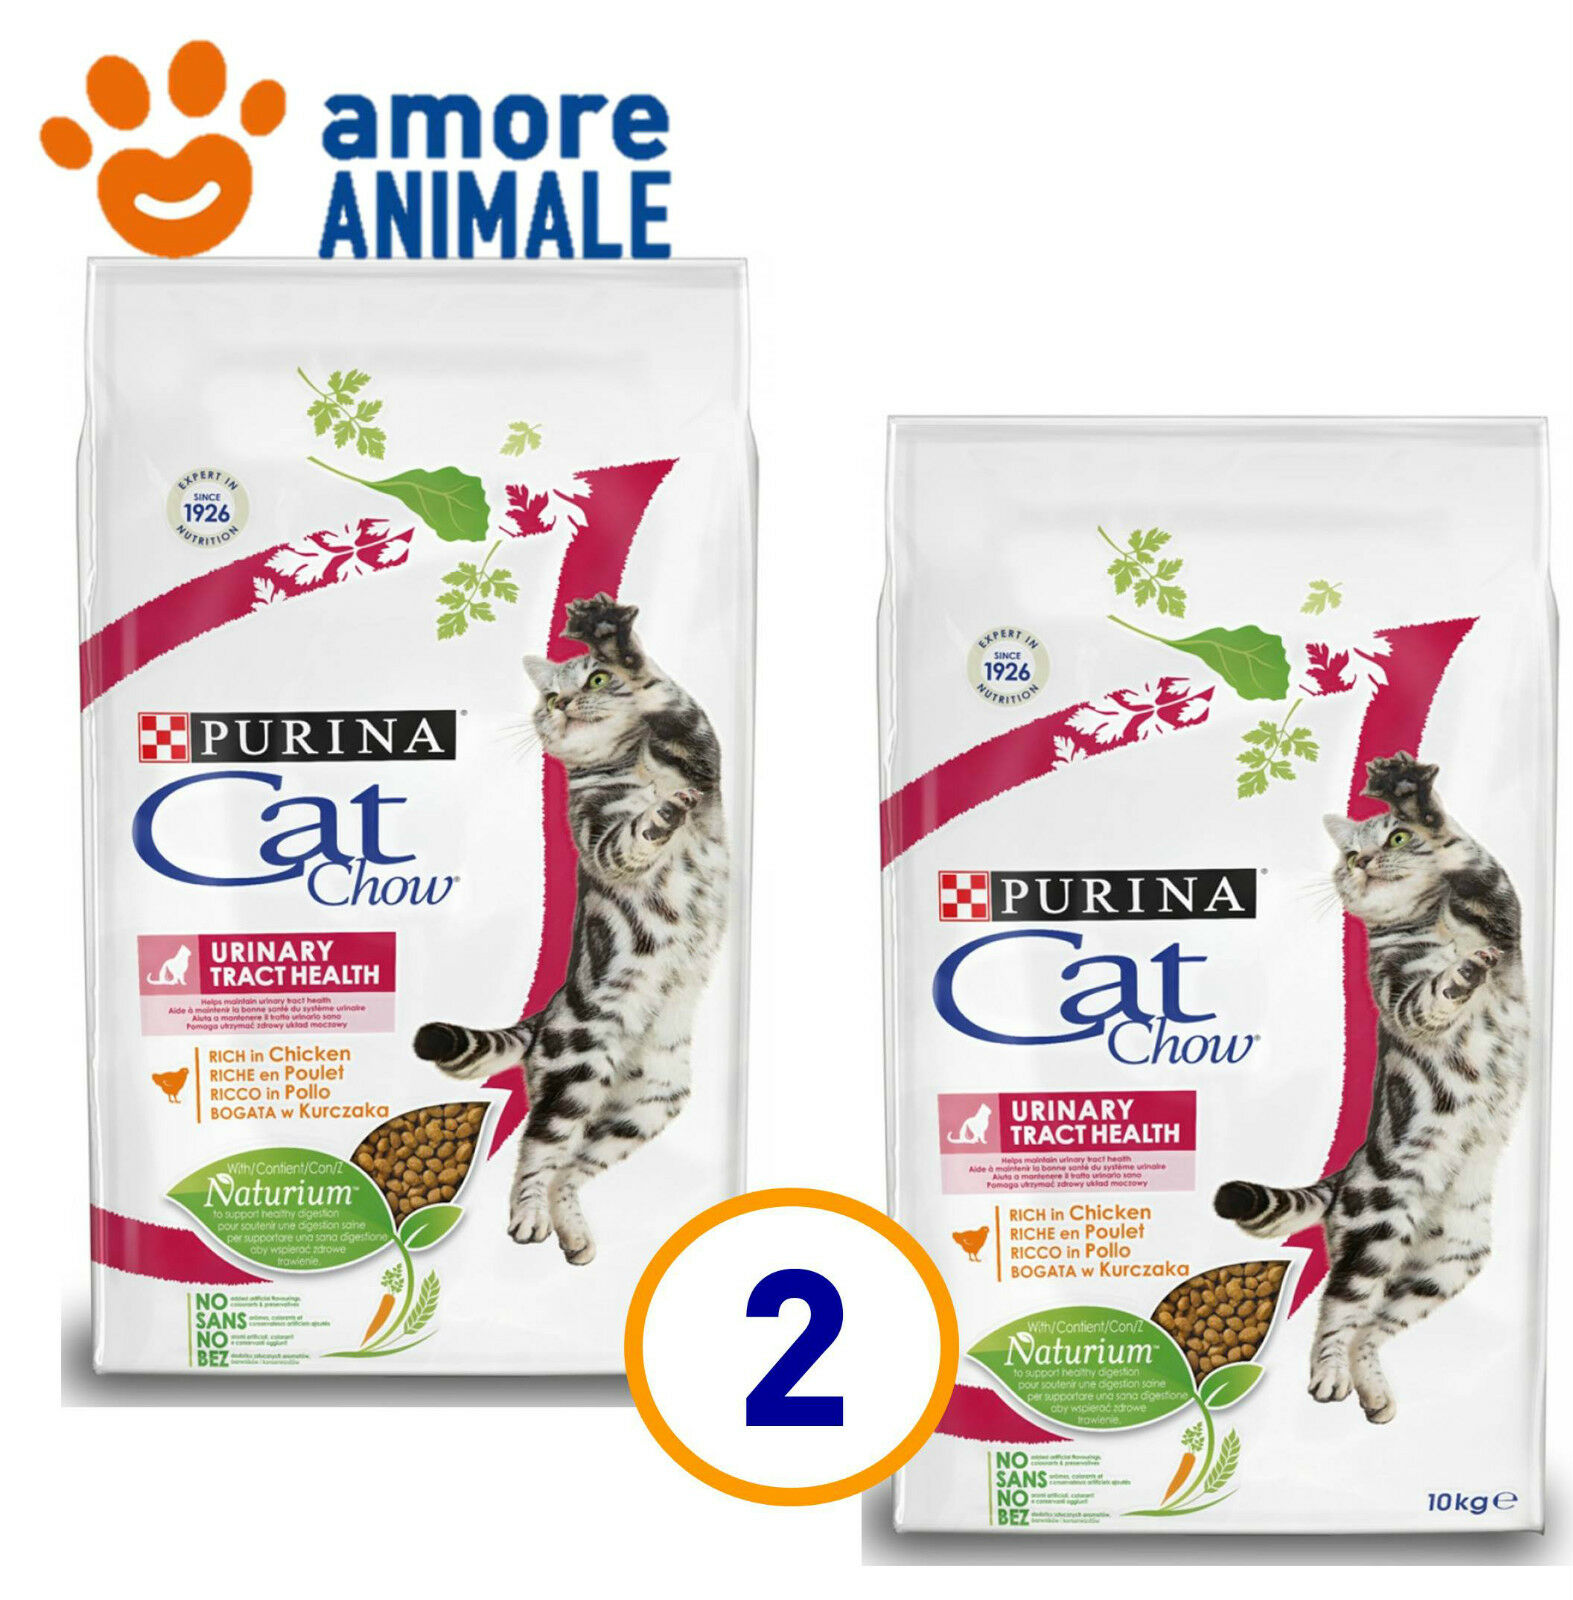 2 SAC   Purina Tonus Cat Chow Urinary Tract Health 10 Kg